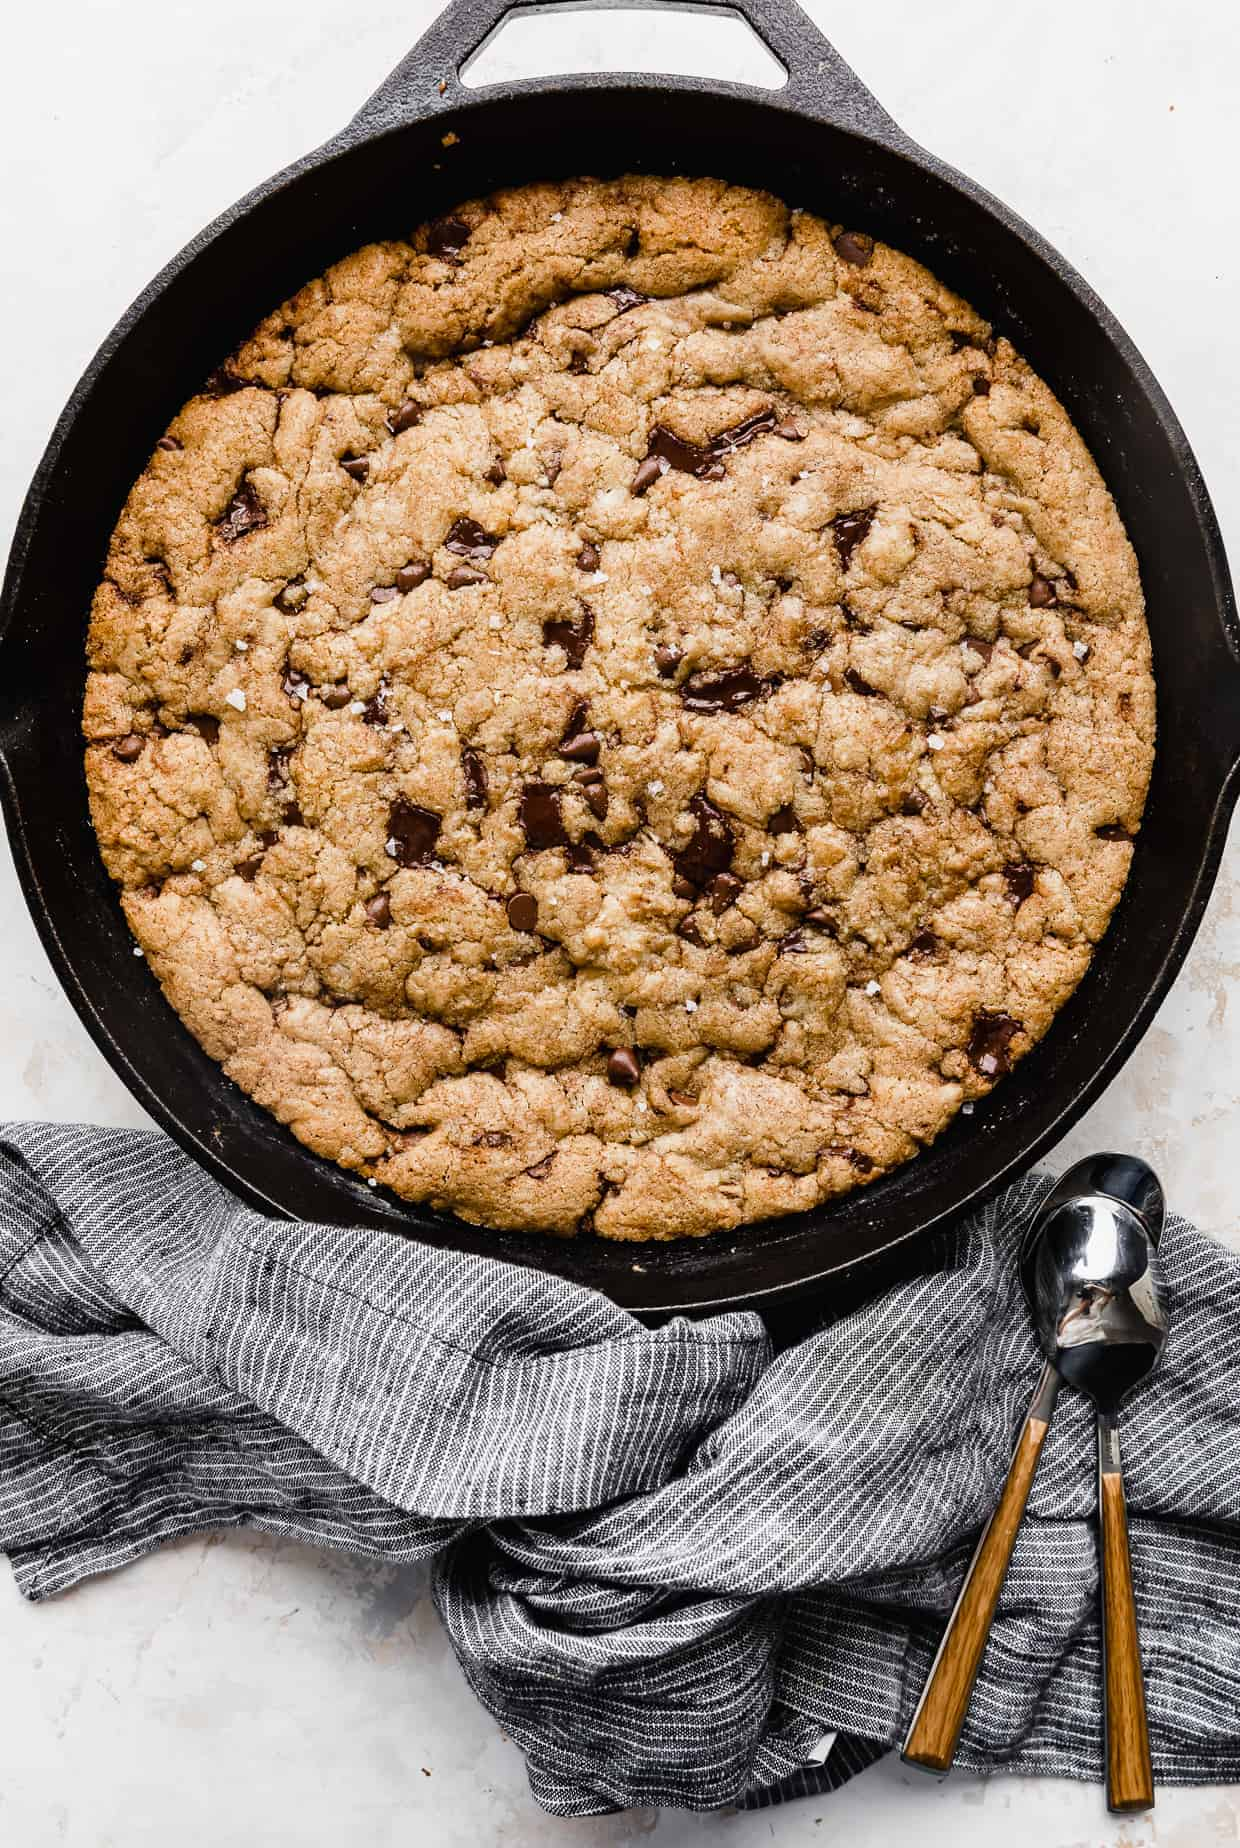 A pizookie in a skillet on a white background.